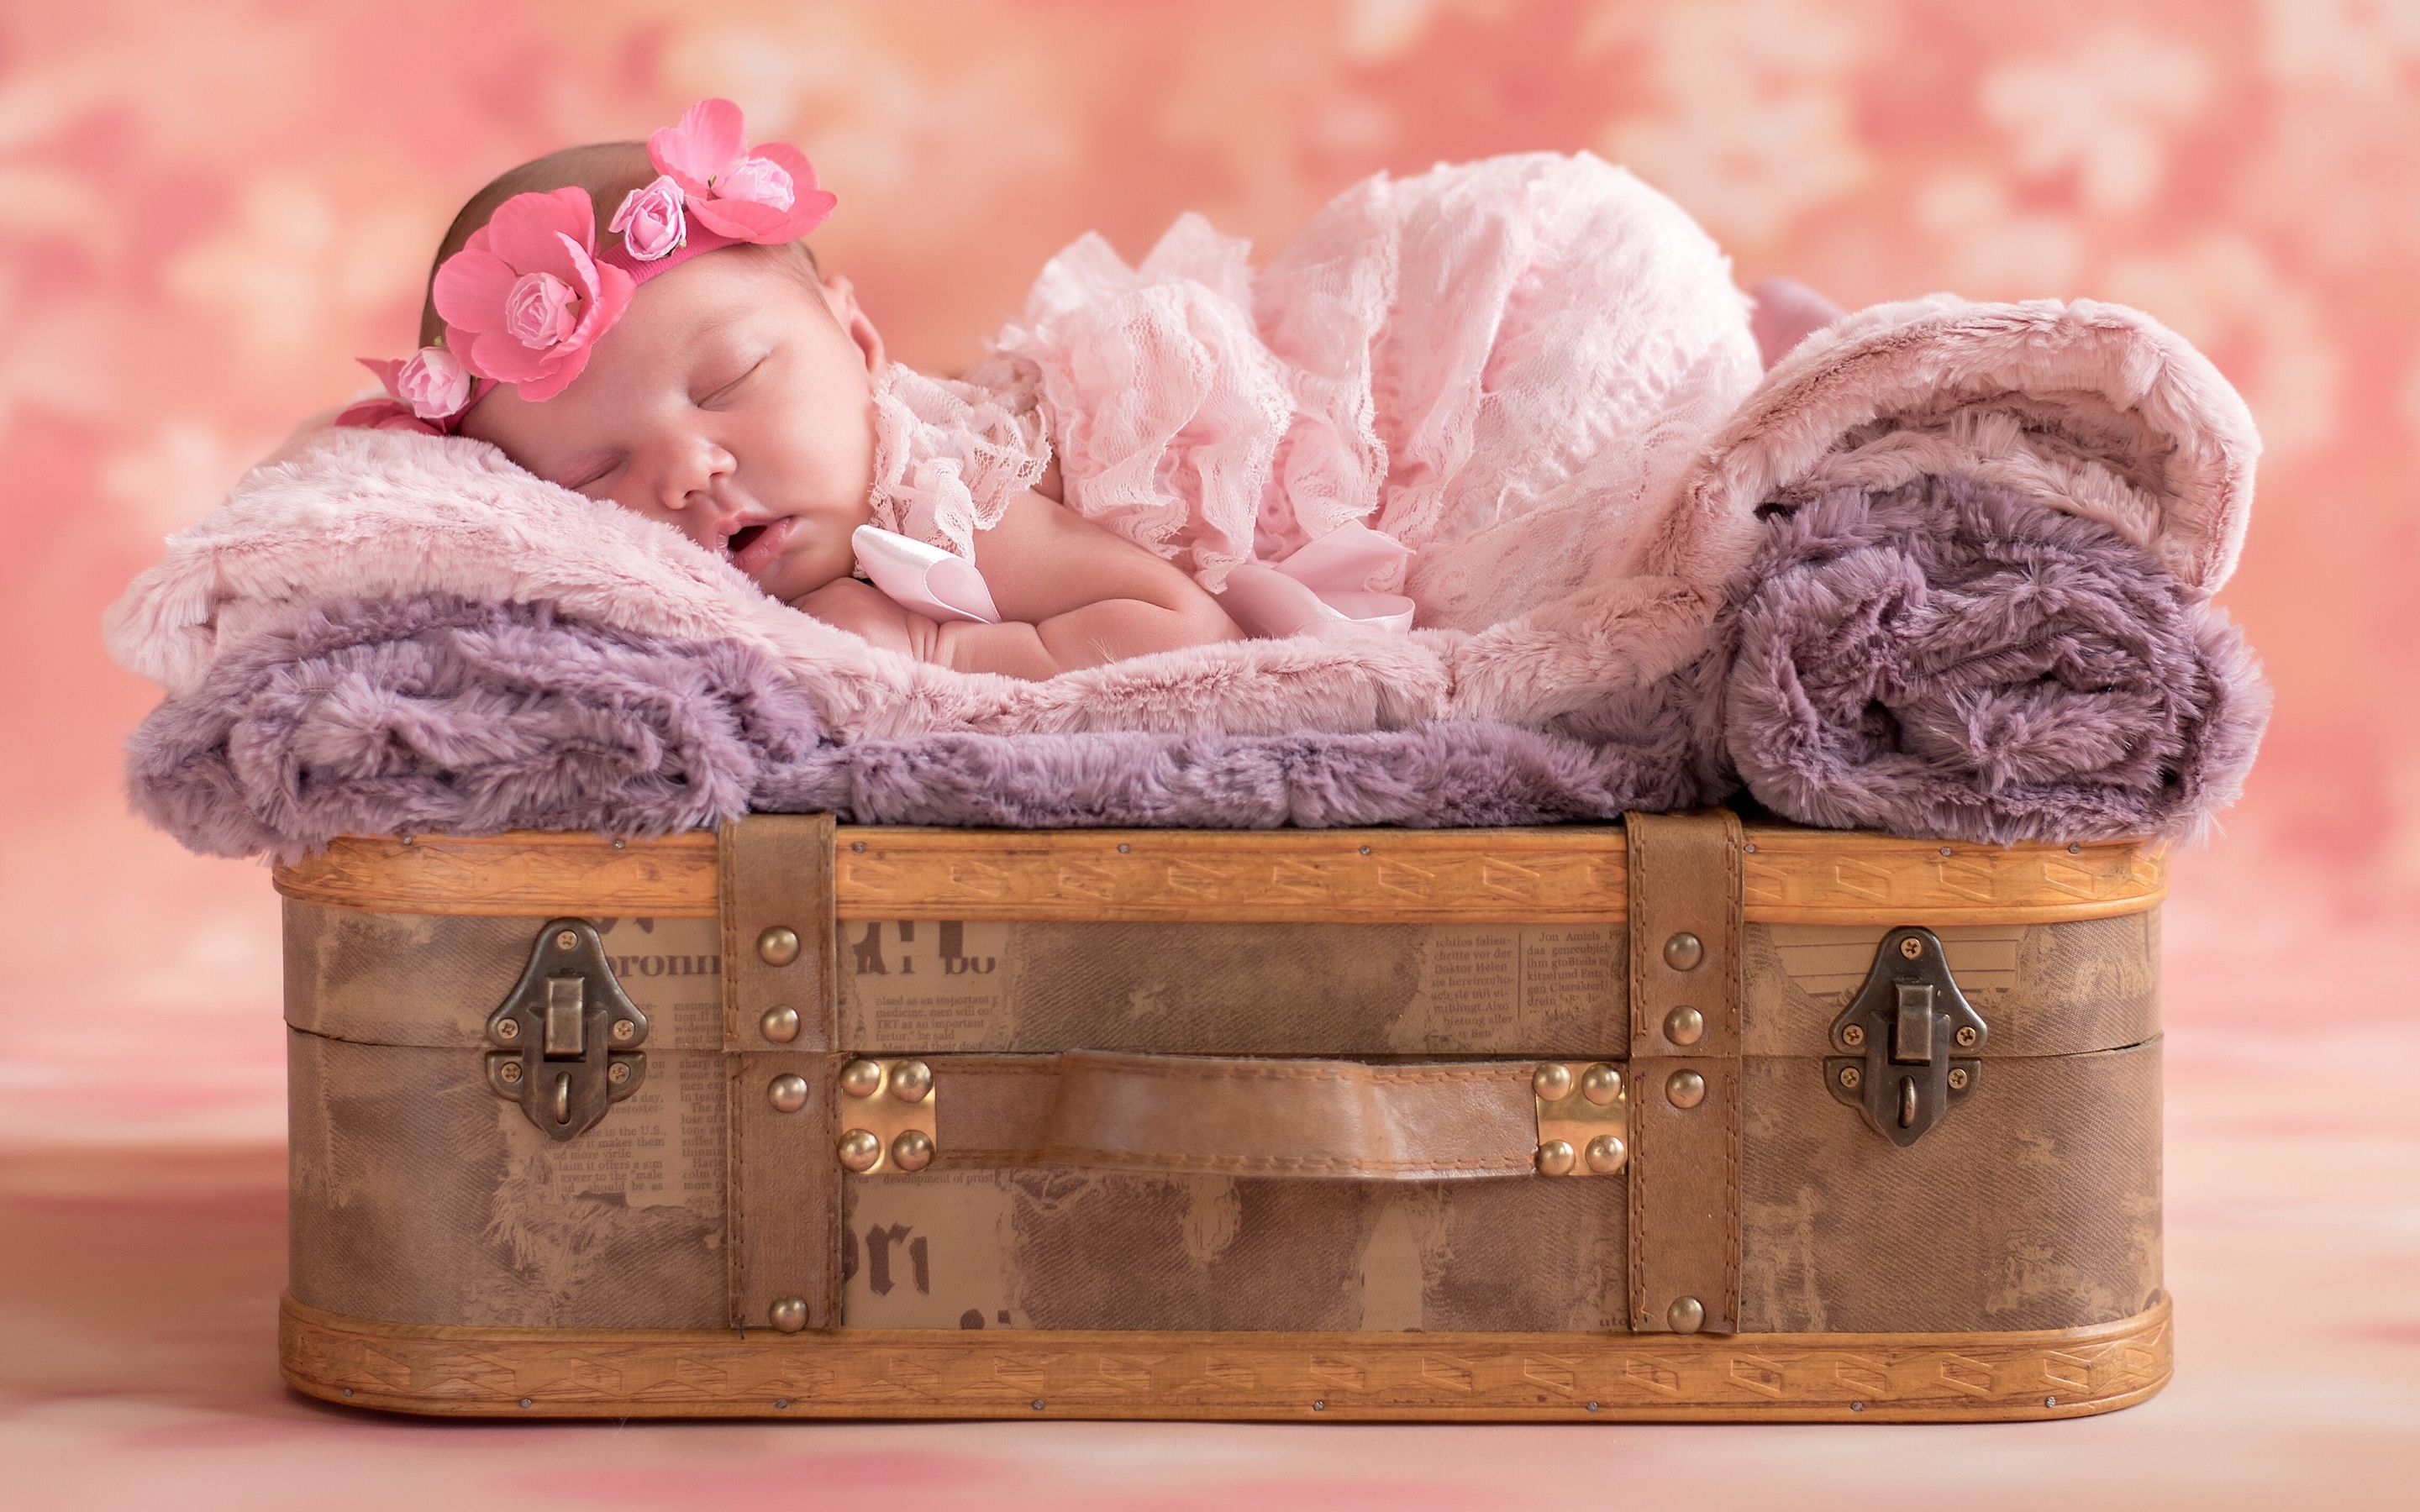 Cute Baby Sleep Wallpapers In Jpg Format For Free Download